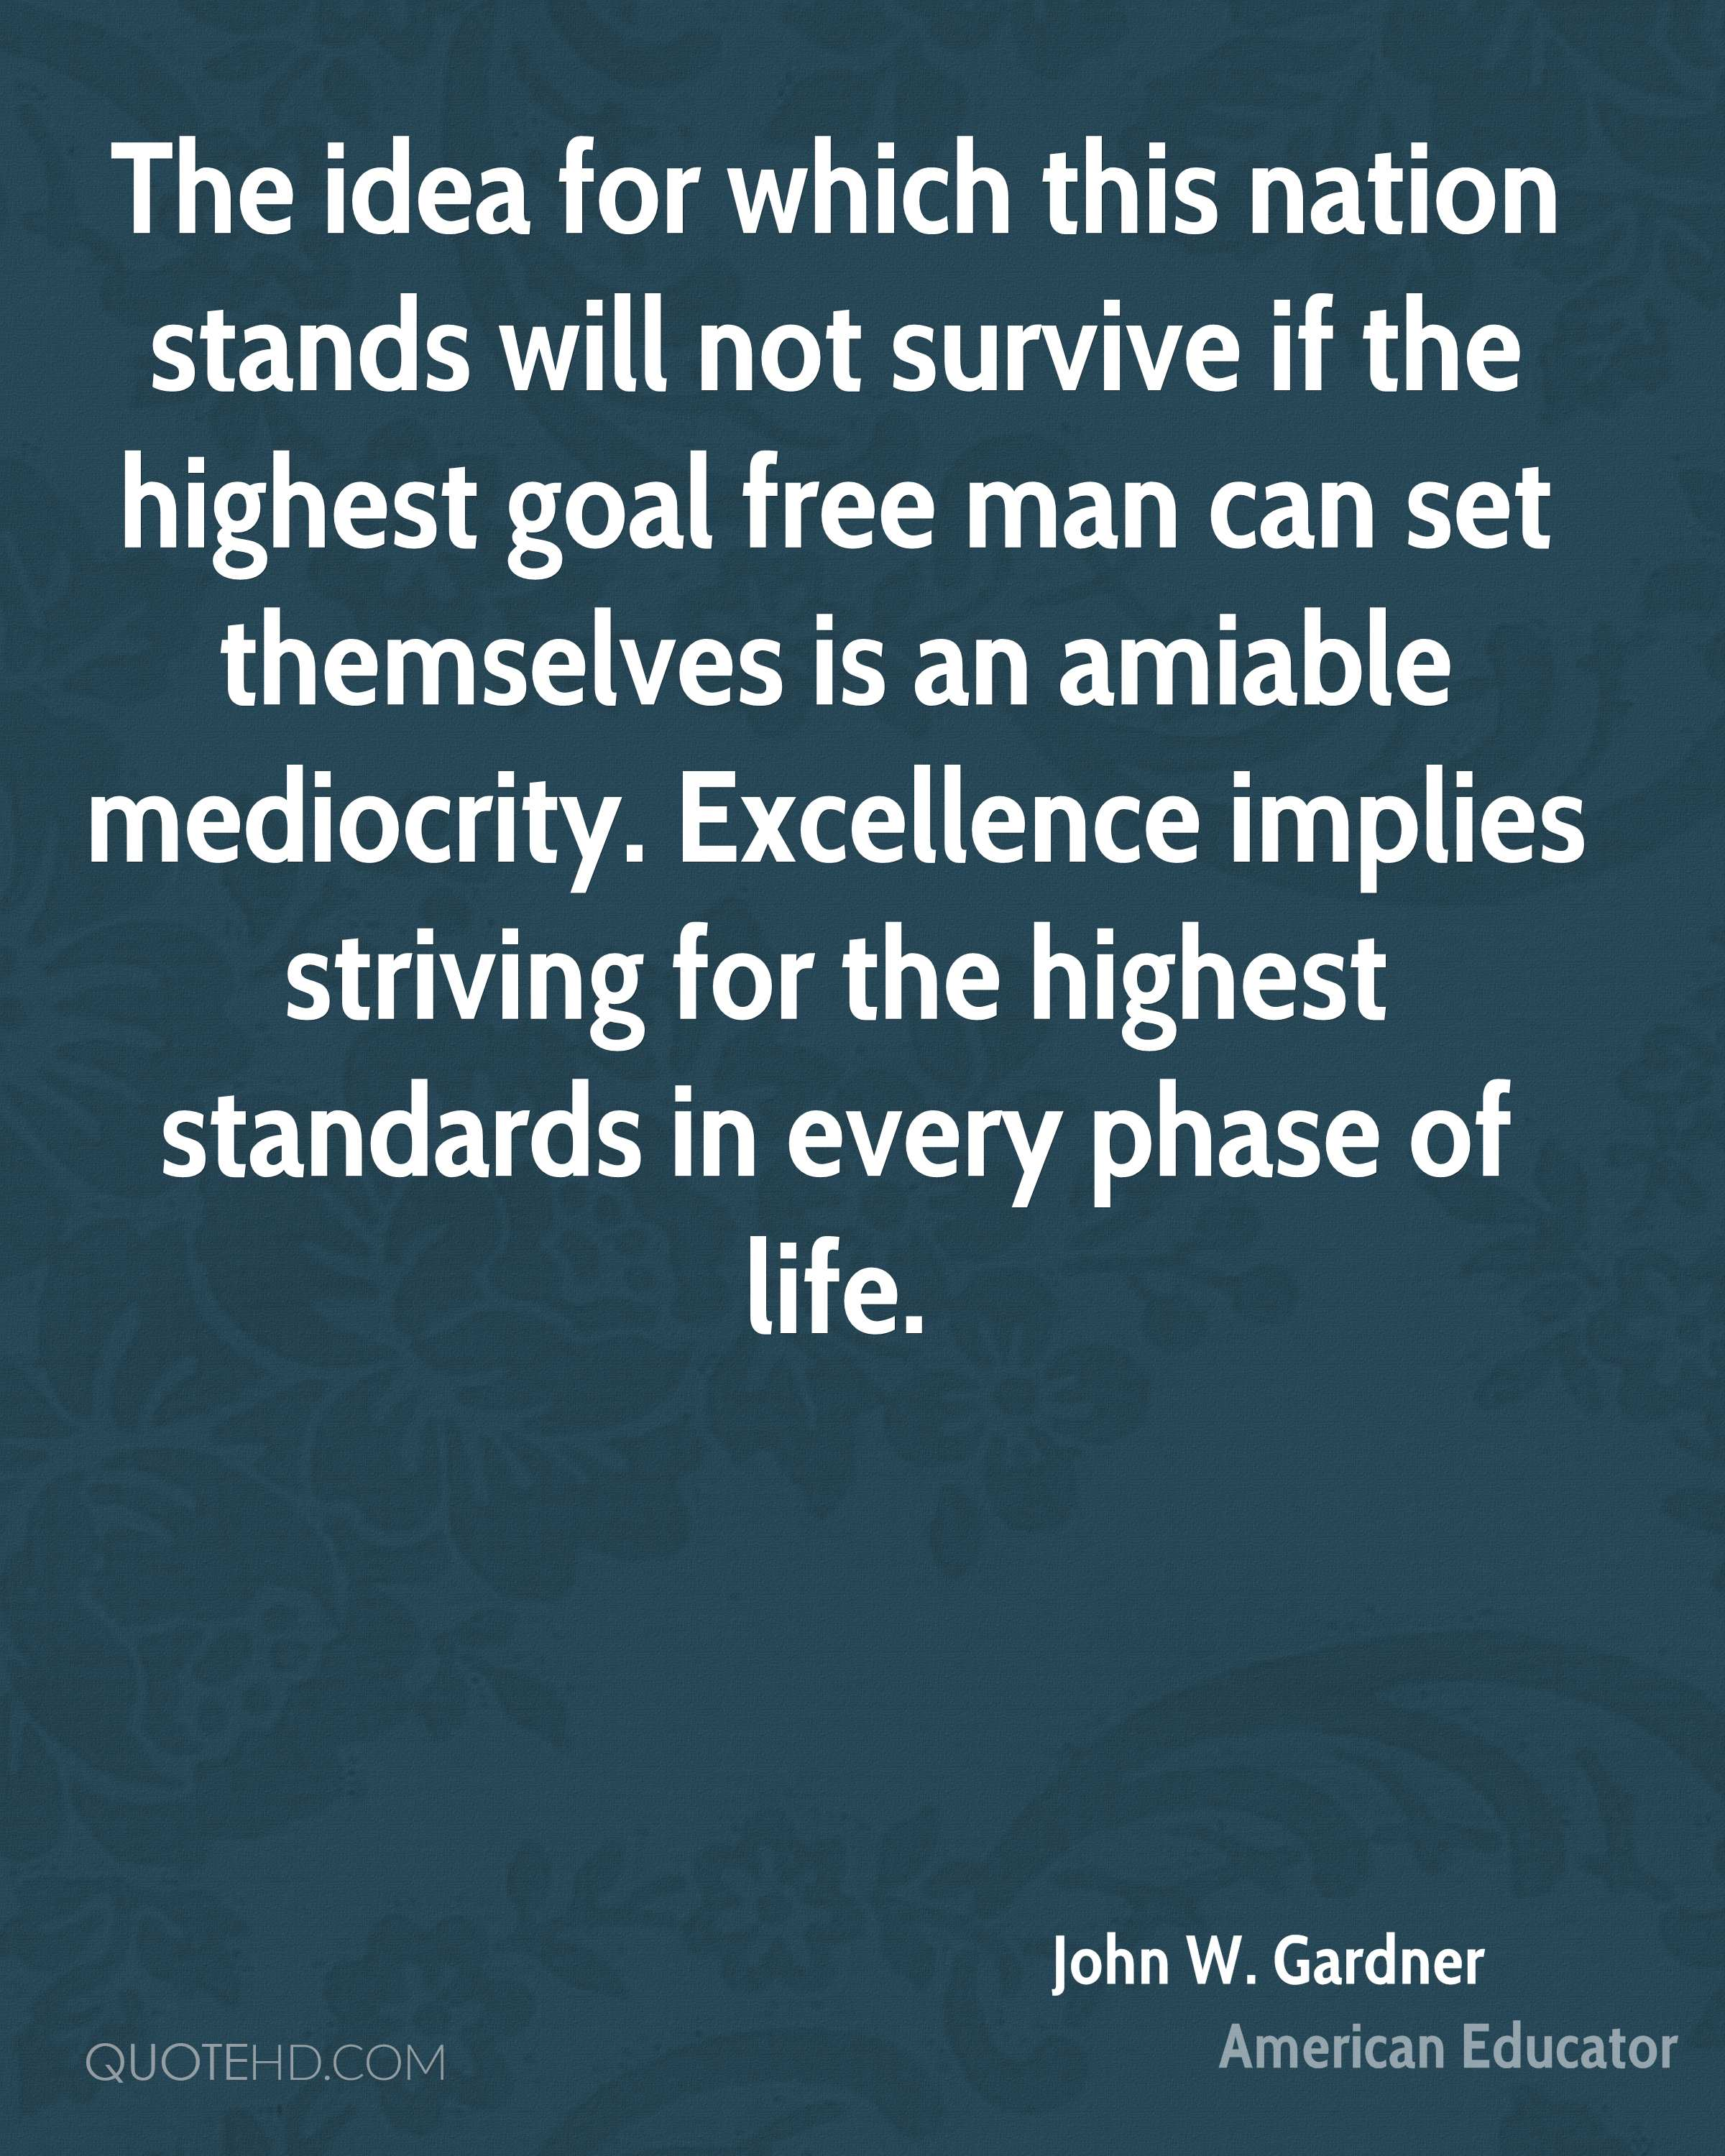 The idea for which this nation stands will not survive if the highest goal free man can set themselves is an amiable mediocrity. Excellence implies striving for the highest standards in every phase of life.